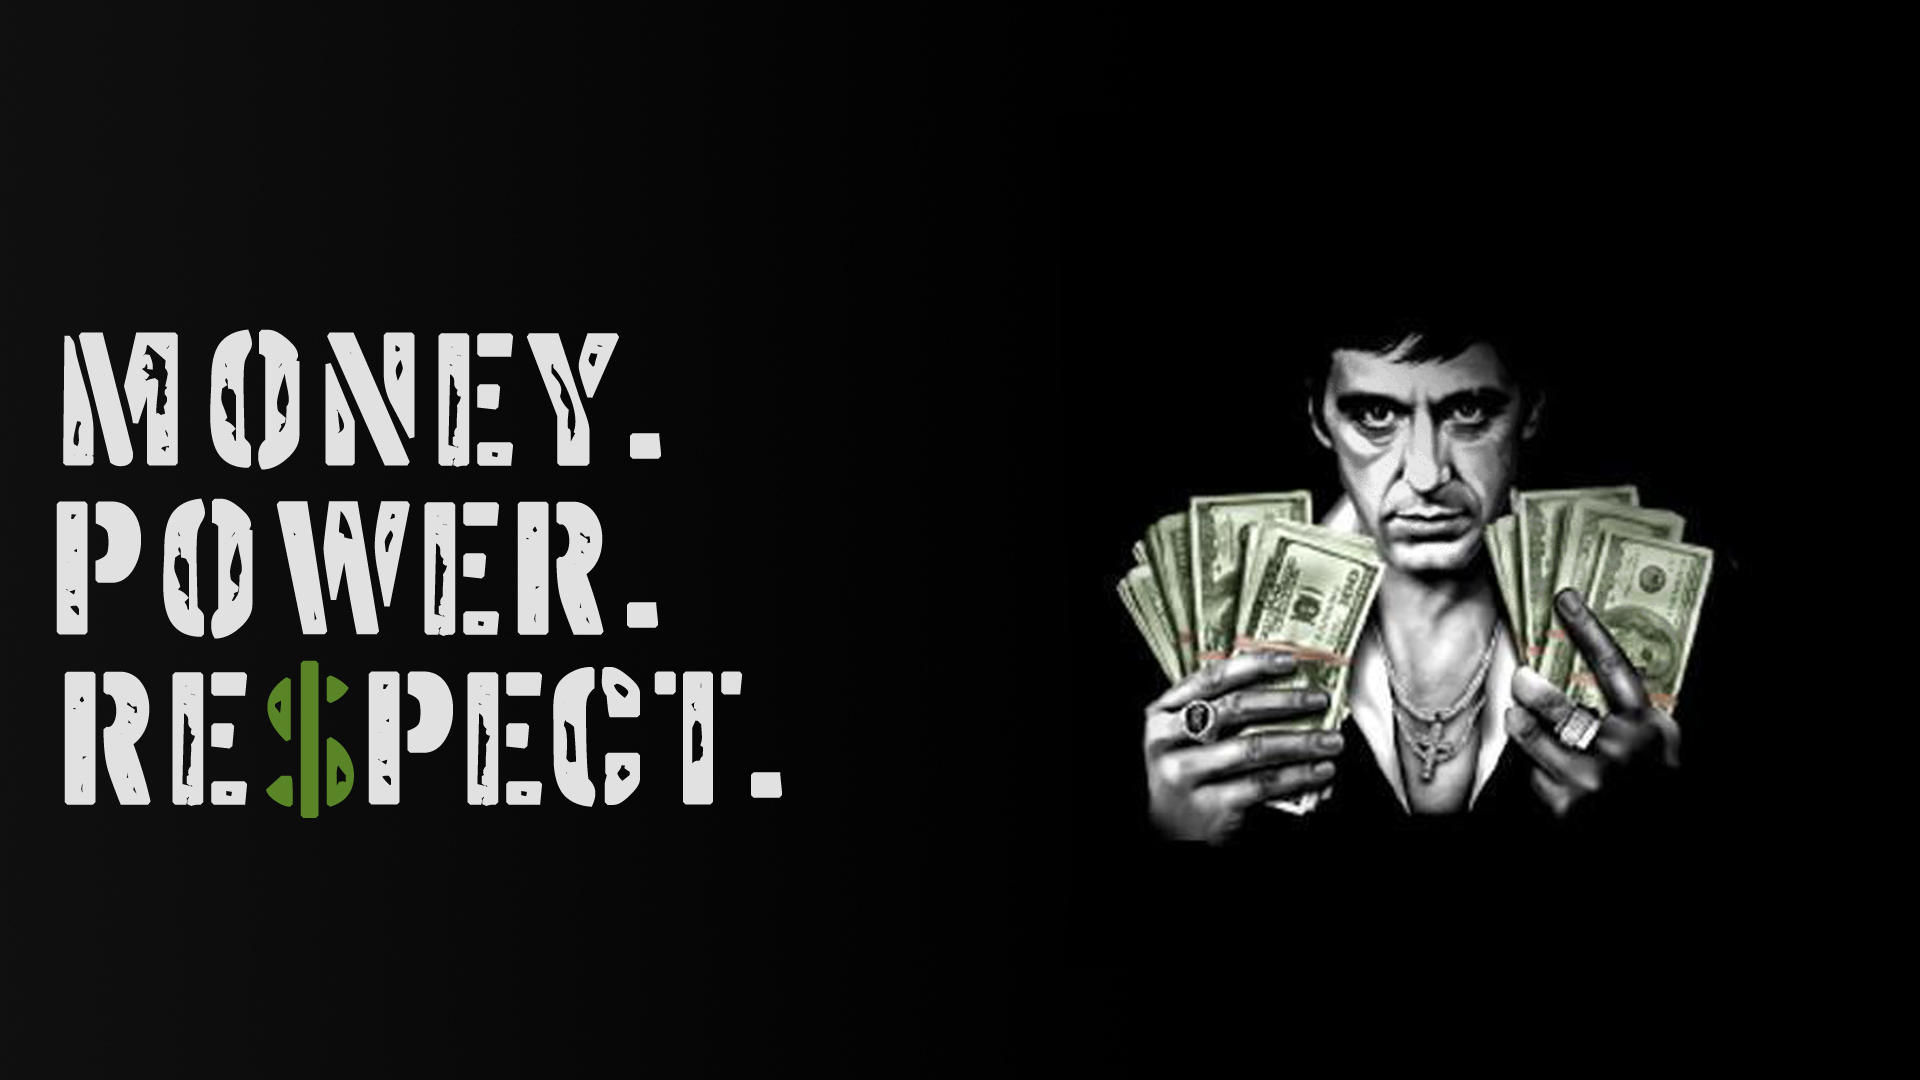 Scarface Coke Wallpaper Hd